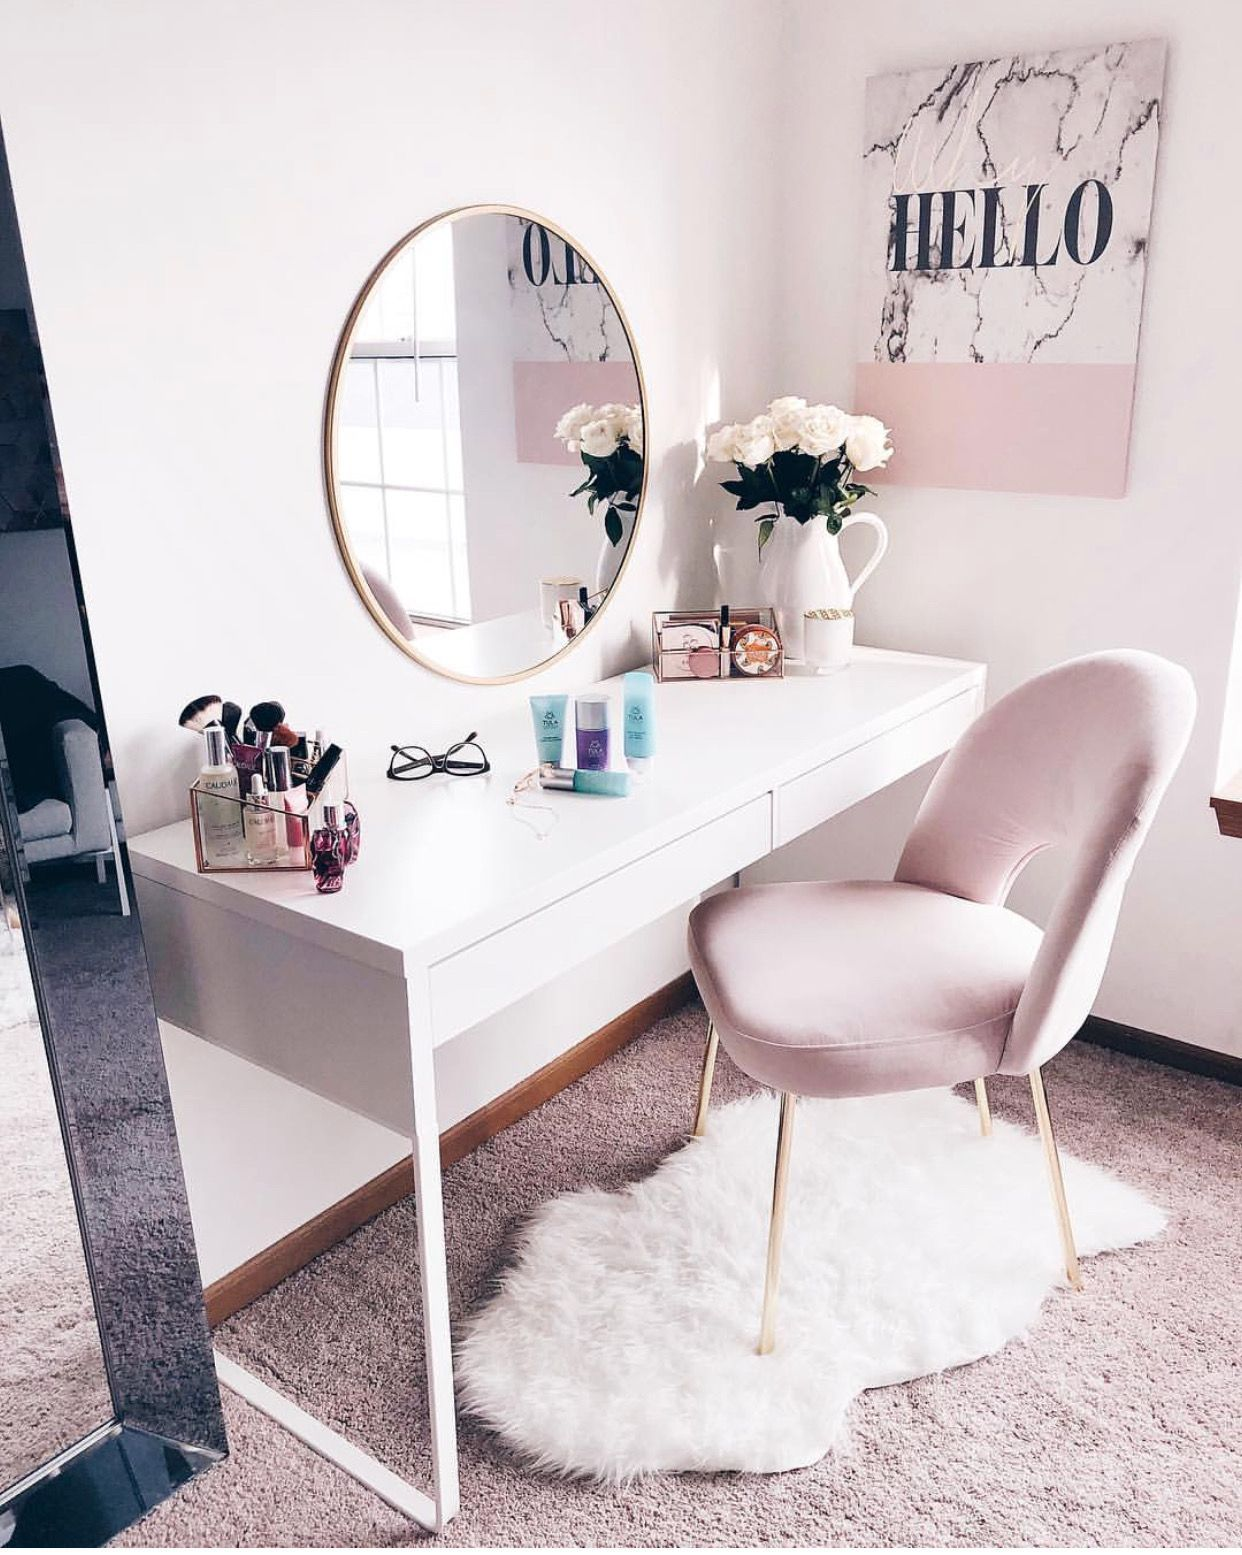 28 Diy Simple Makeup Room Ideas Organizer Storage And Decorating Pink Bedroom Decor Room Decor Simple Bedroom